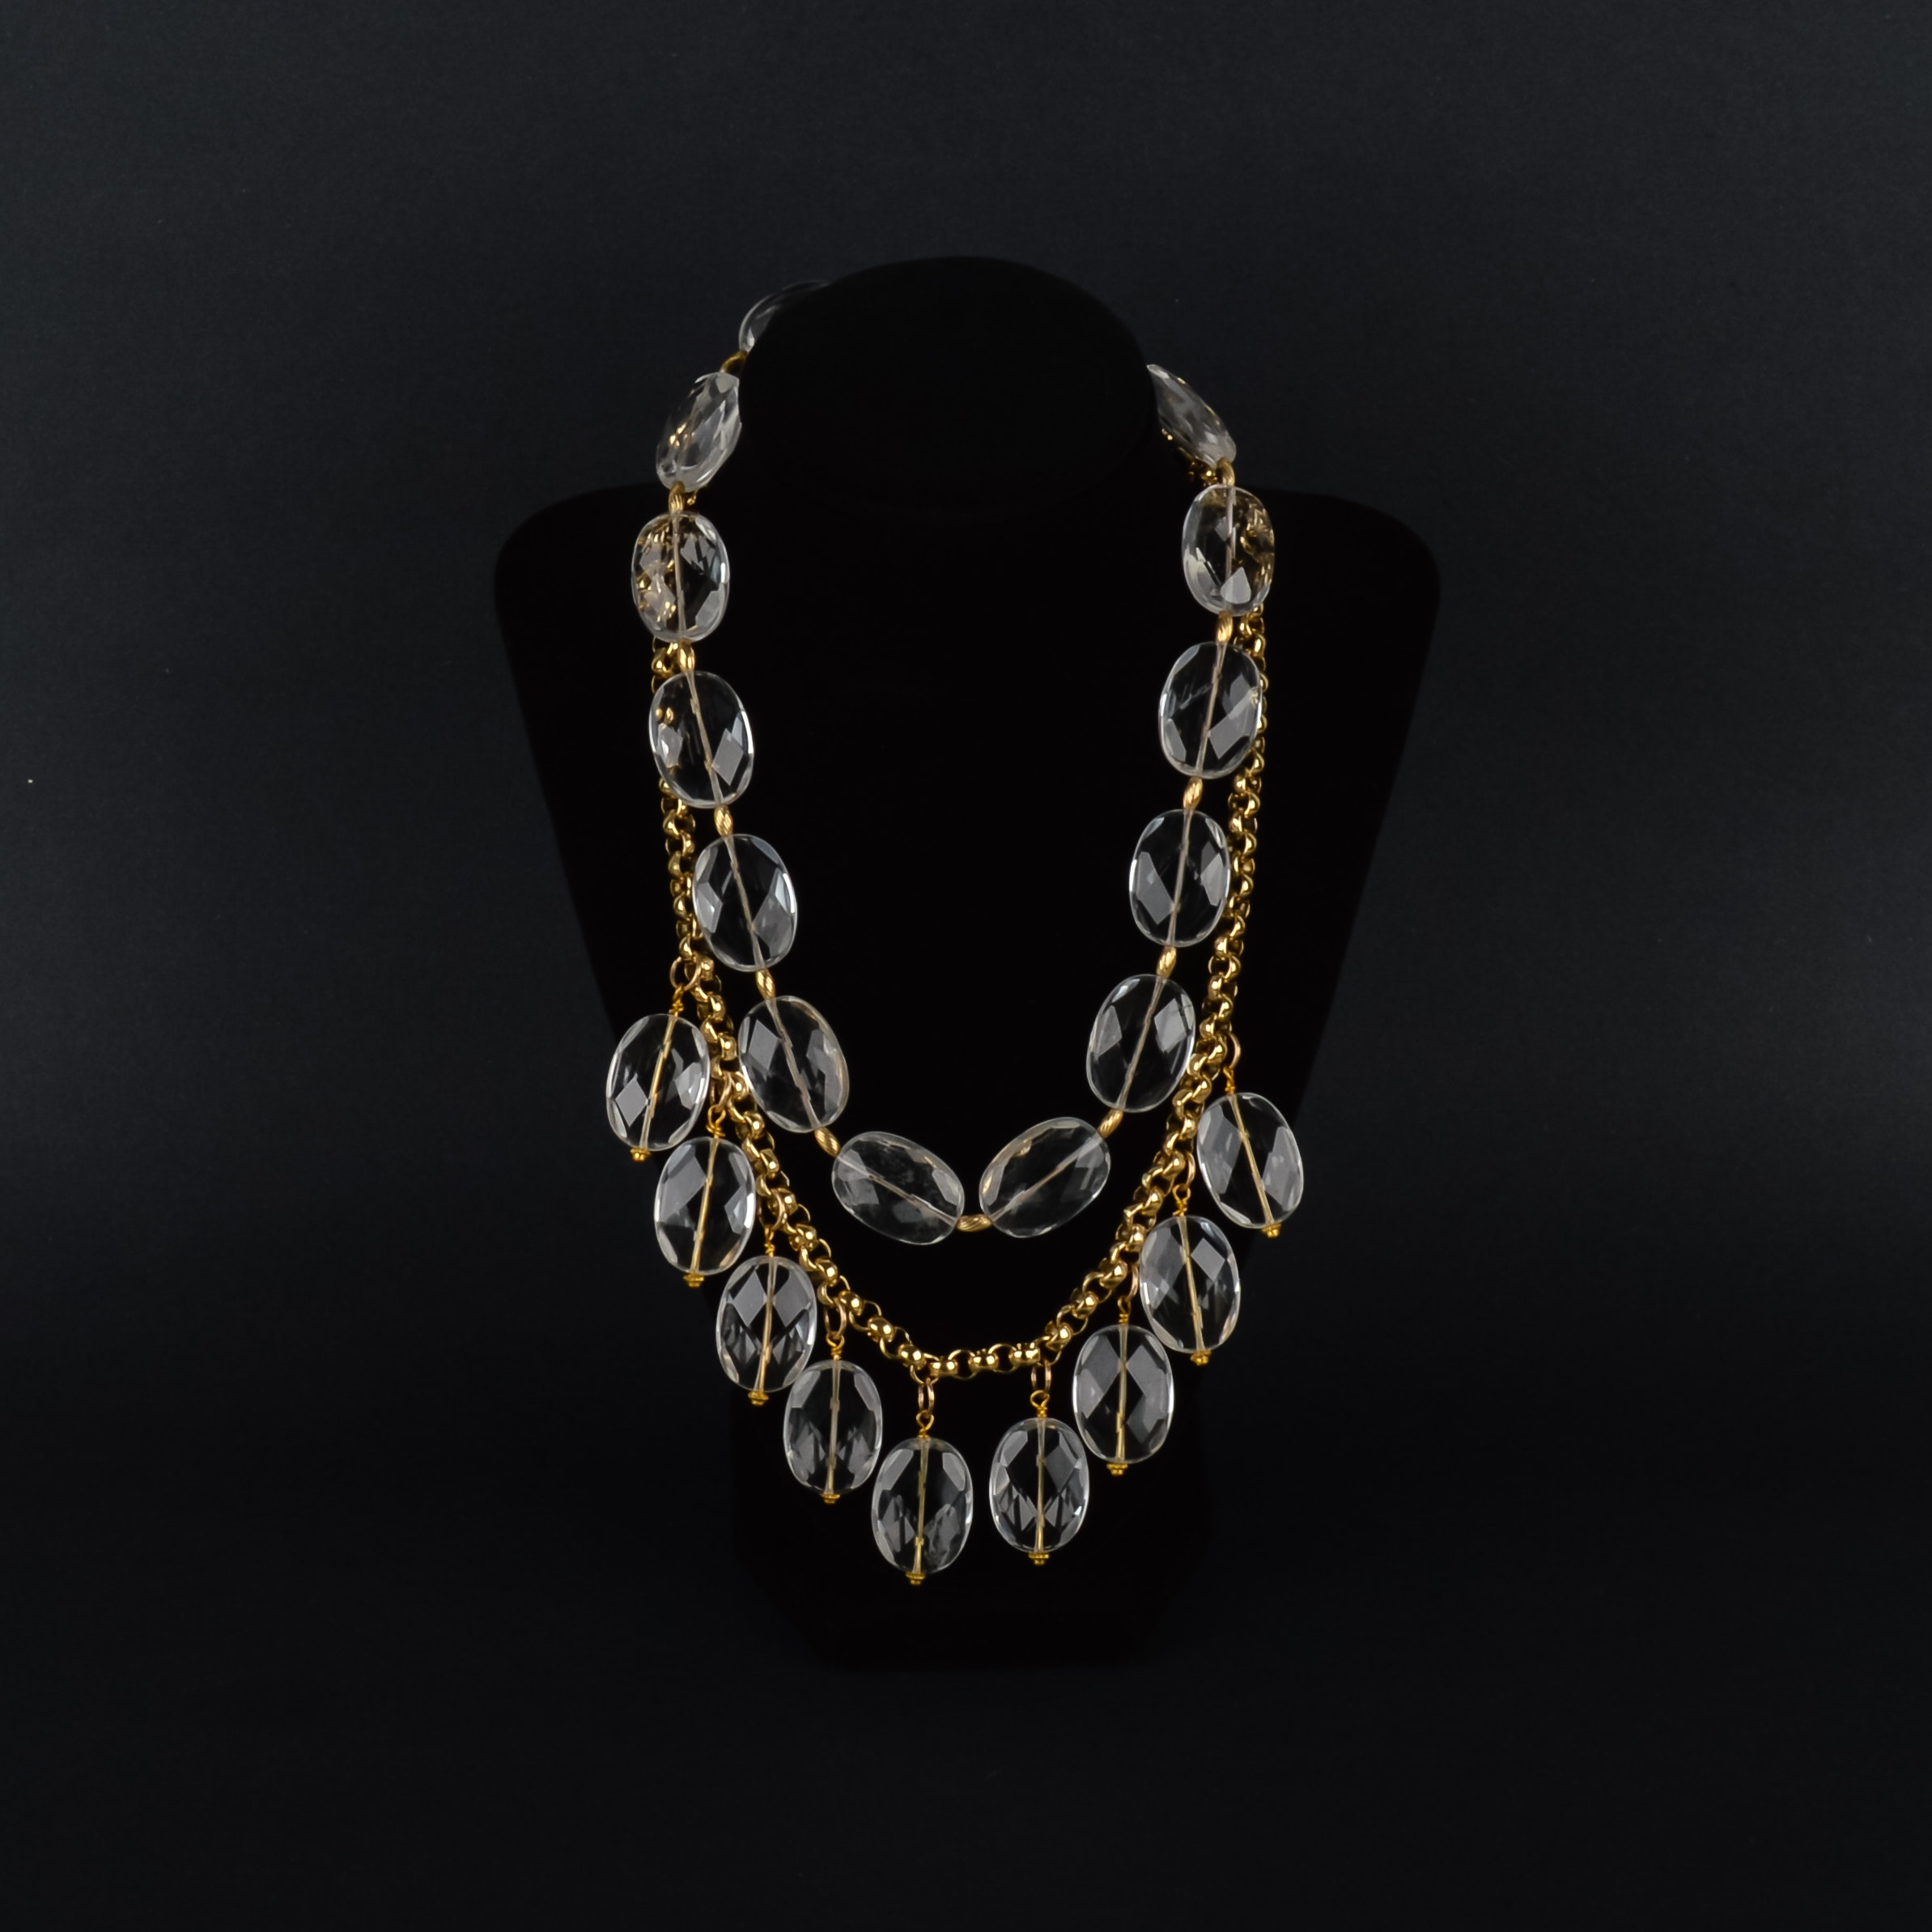 Vintage Dual Strand Necklace